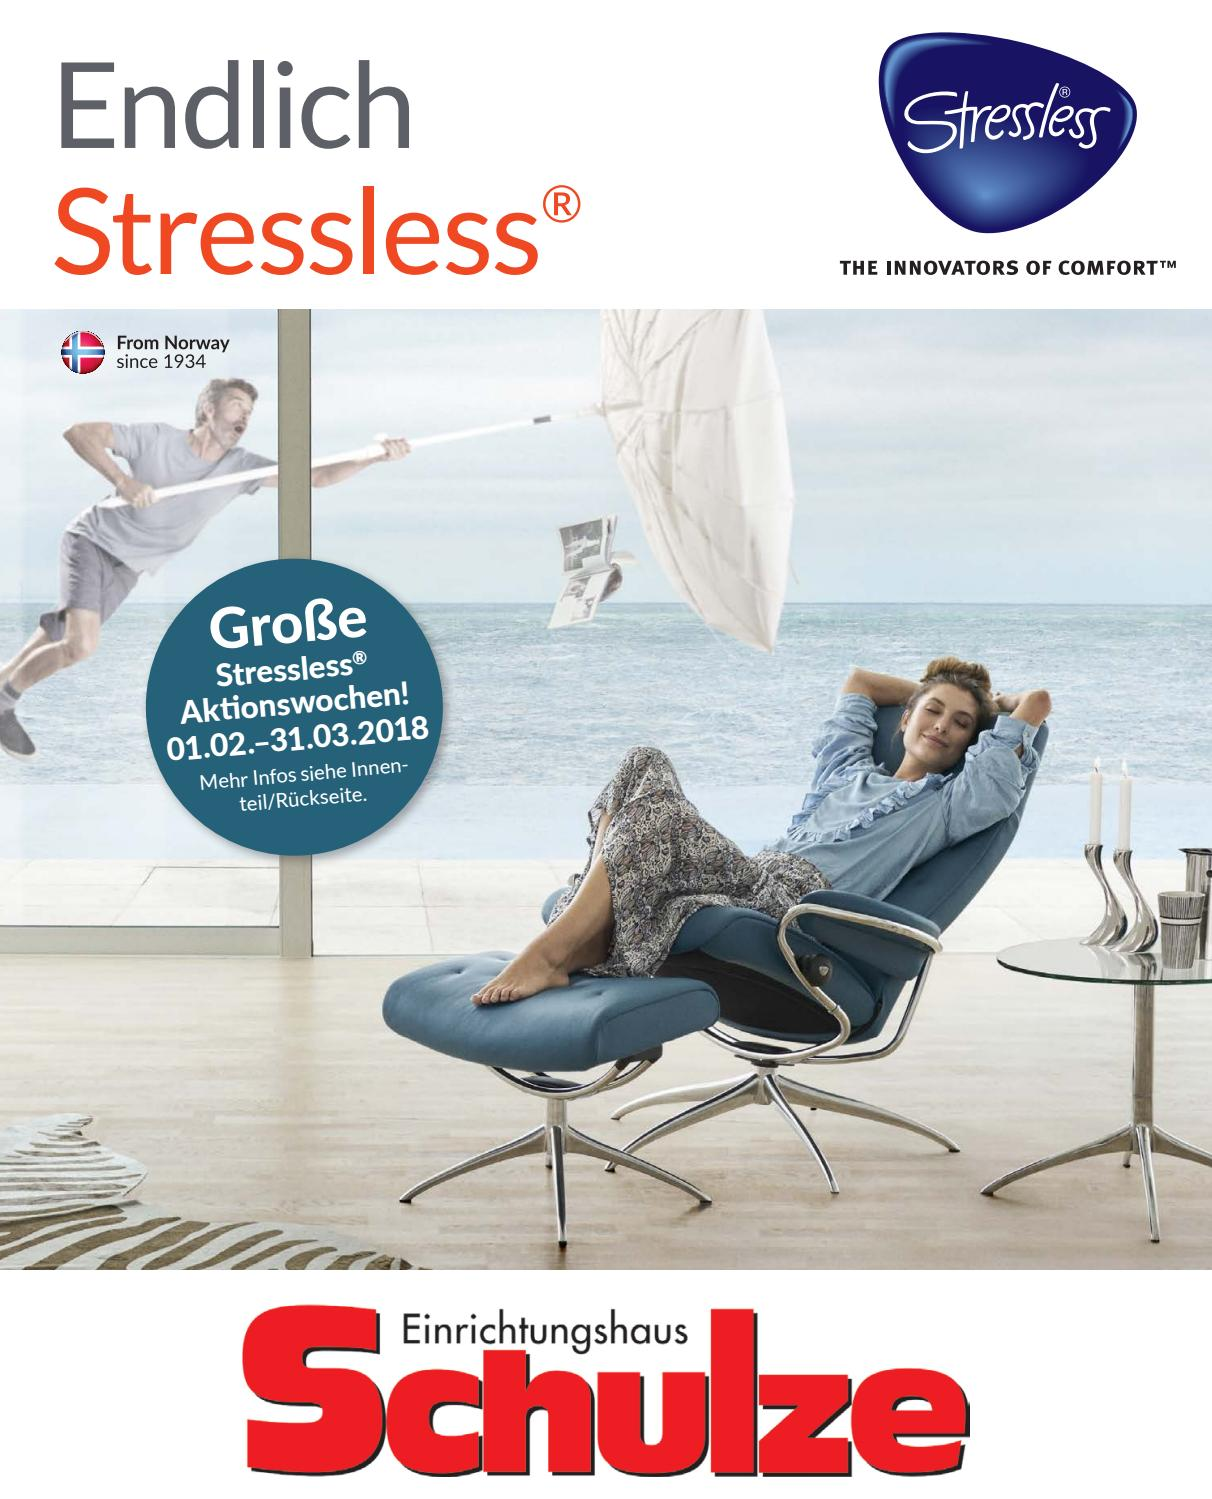 Stressless Sessel Inkl. Hocker Modell Sunrise (m) Classic Endlich Stressless 01 02 31 03 By Möbel Schulze Issuu